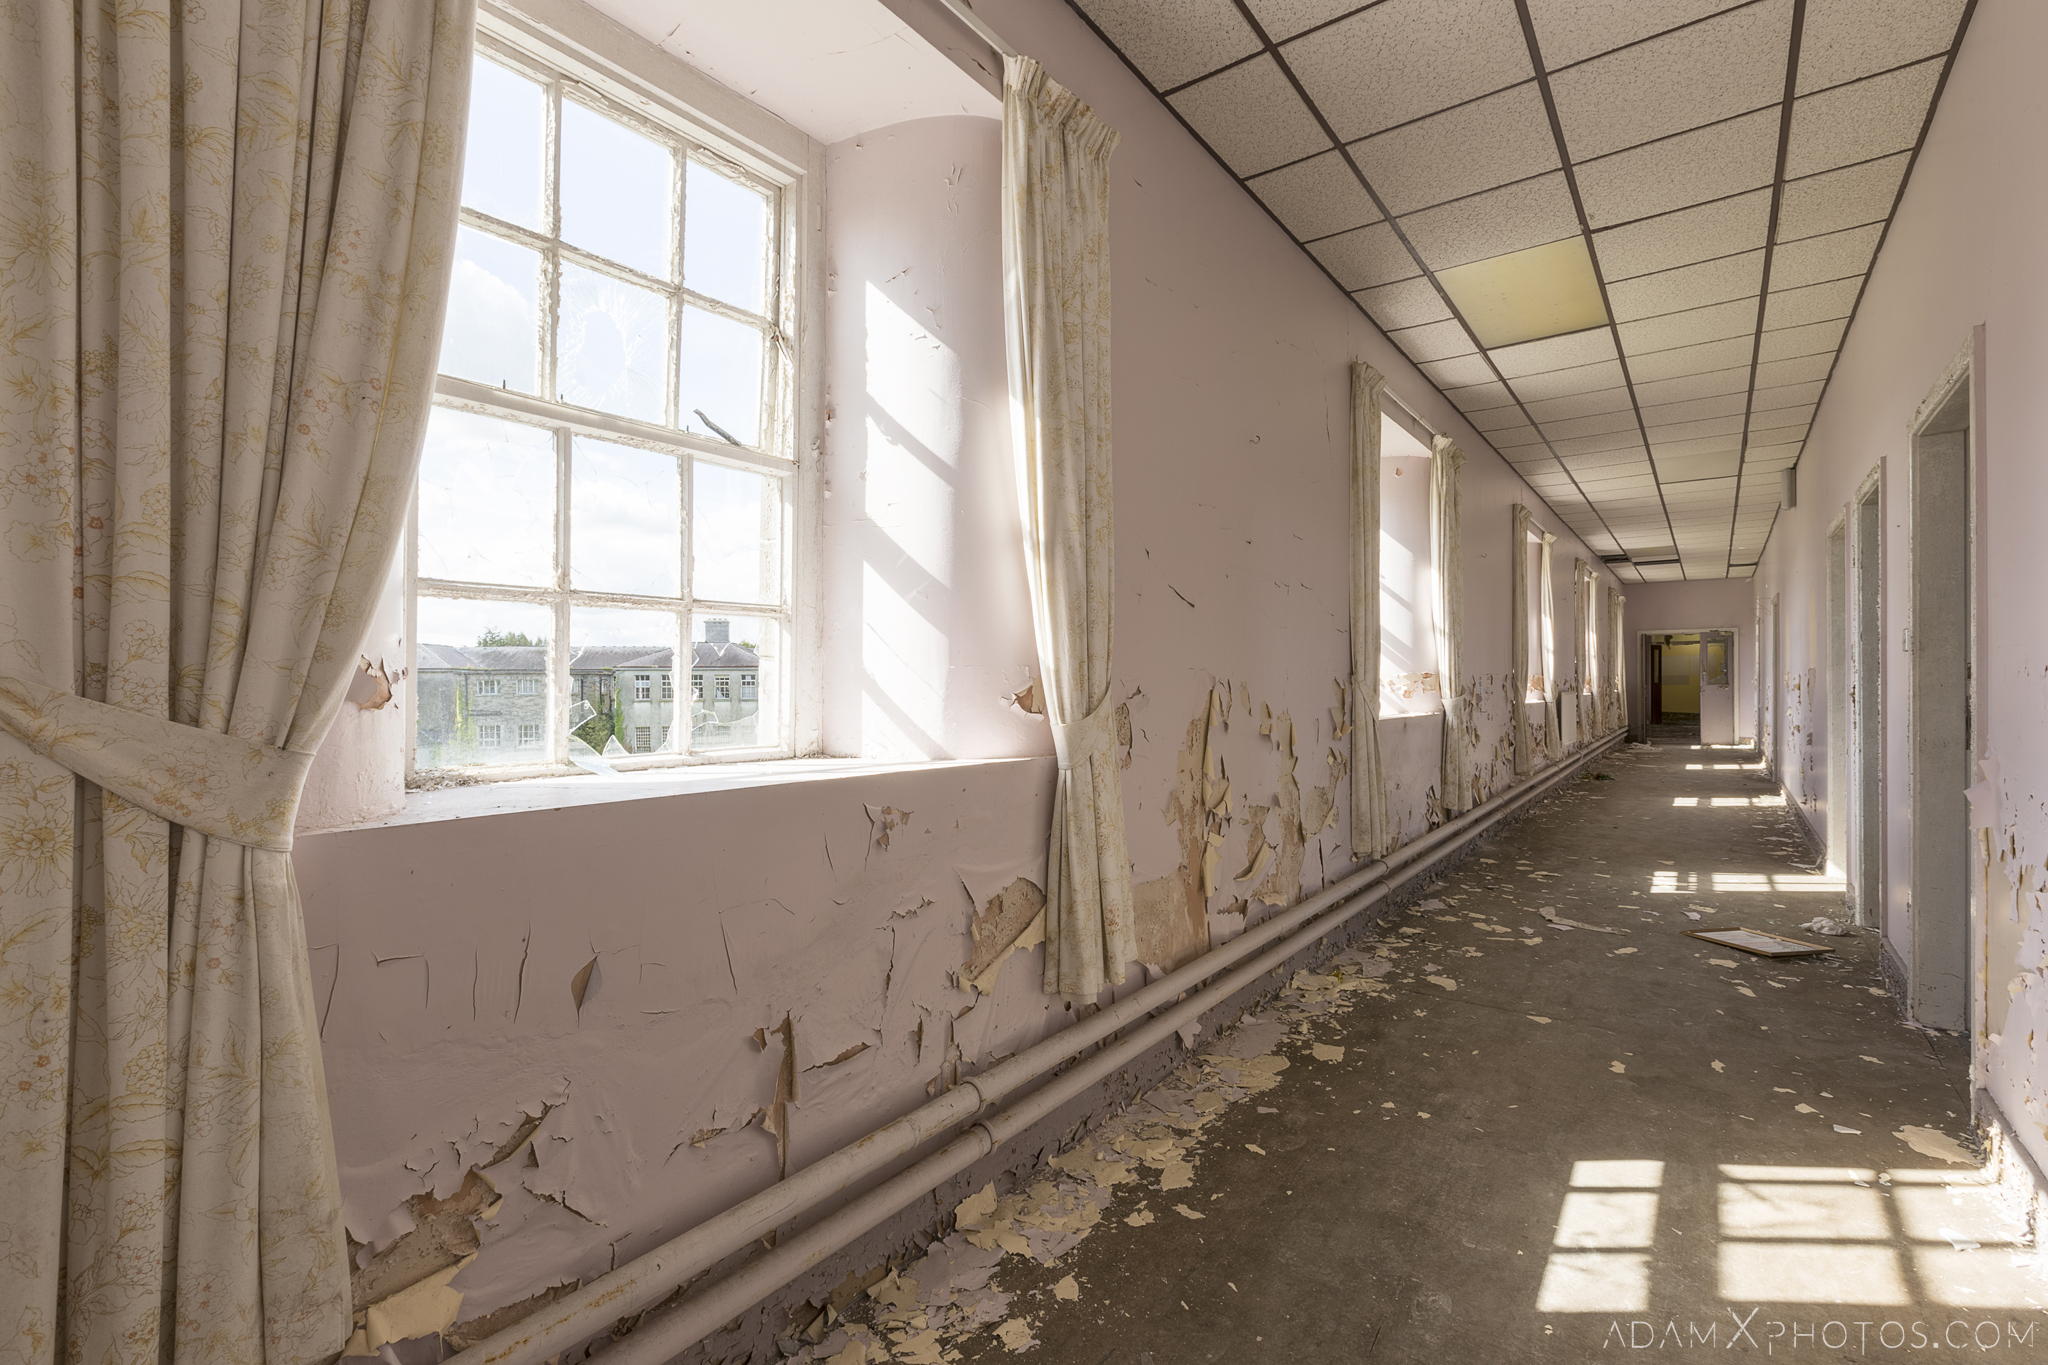 purple corridor peeling paint Connacht District Lunatic Asylum St Brigid's Hospital Adam X Urbex Urban Exploration Ireland Ballinasloe Access 2017 Abandoned decay lost forgotten derelict location creepy haunting eerie